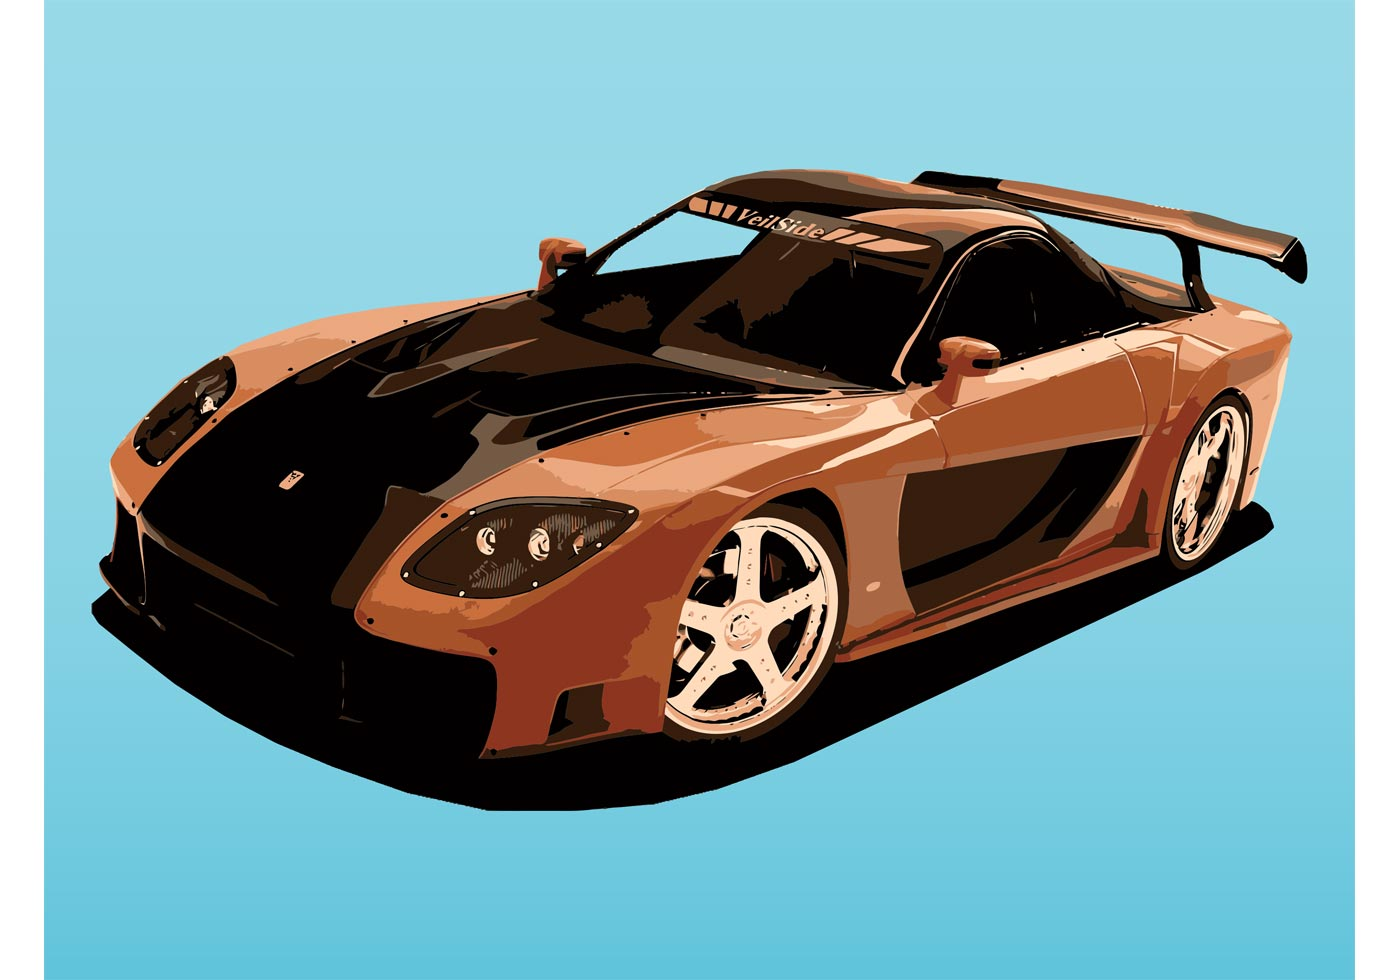 Mazda sports car download free vector art stock - Sports car pictures download ...